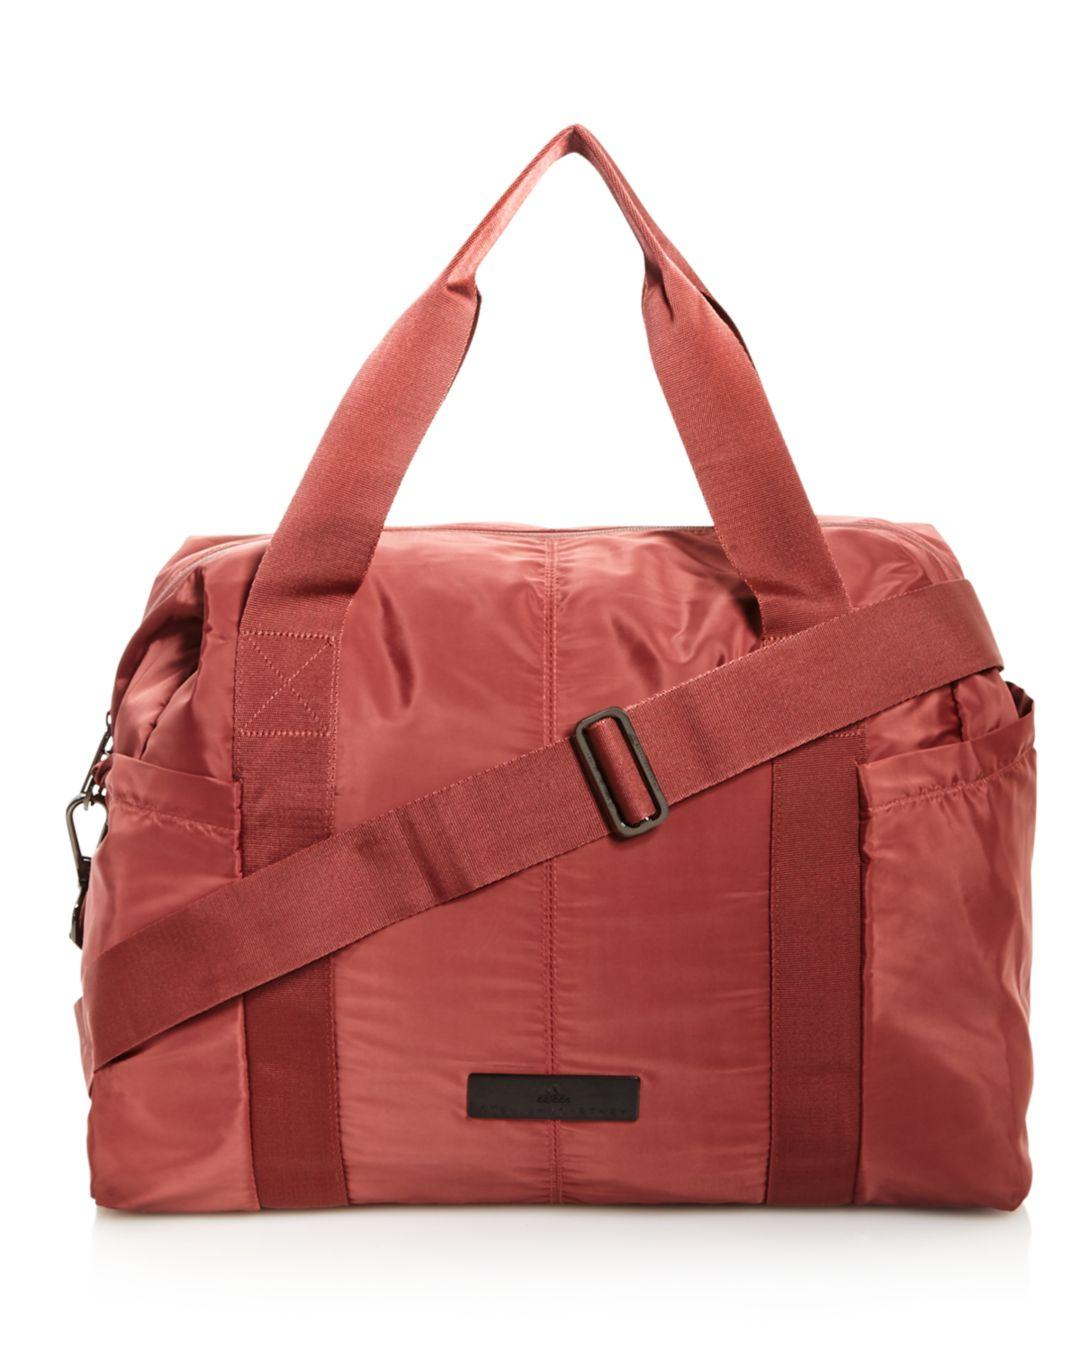 e9a398be4a Lyst - adidas By Stella McCartney Shipshape Gym Bag in Red